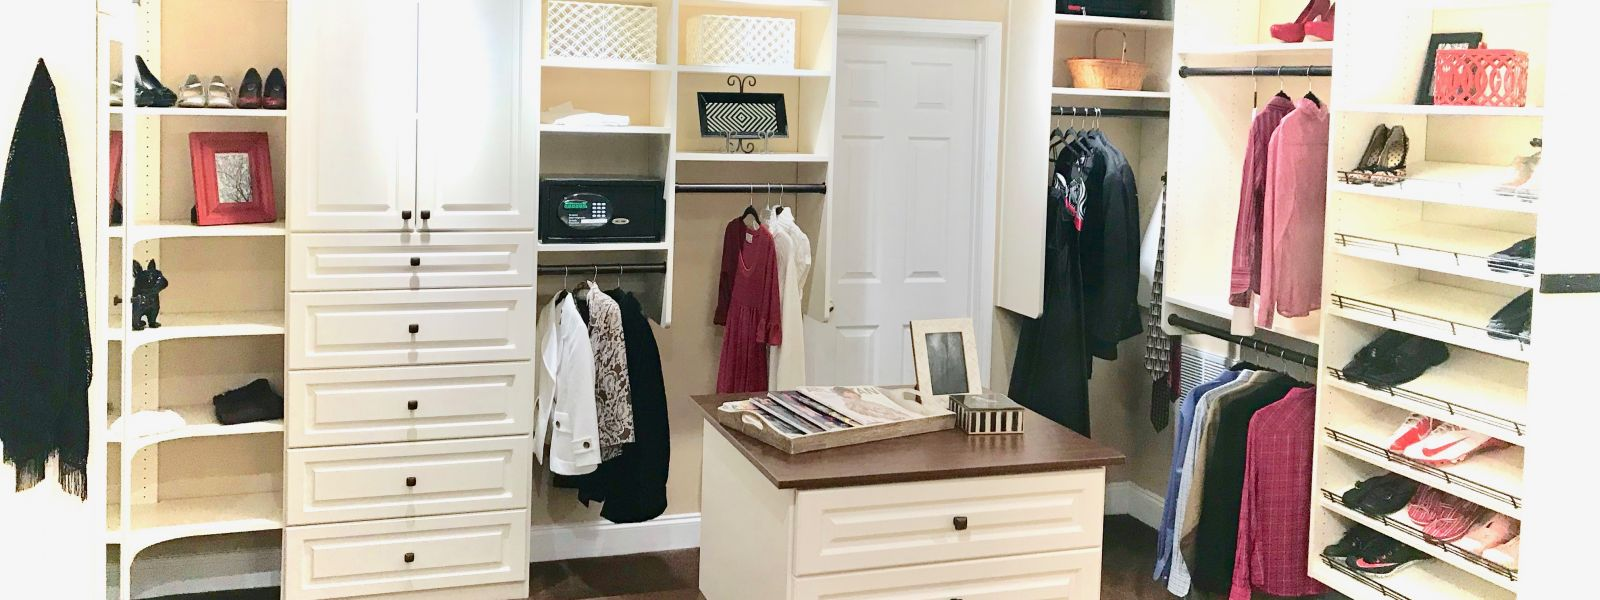 3 Ways to Conquer Office Space Clutter with Artisan Closets in Atlanta